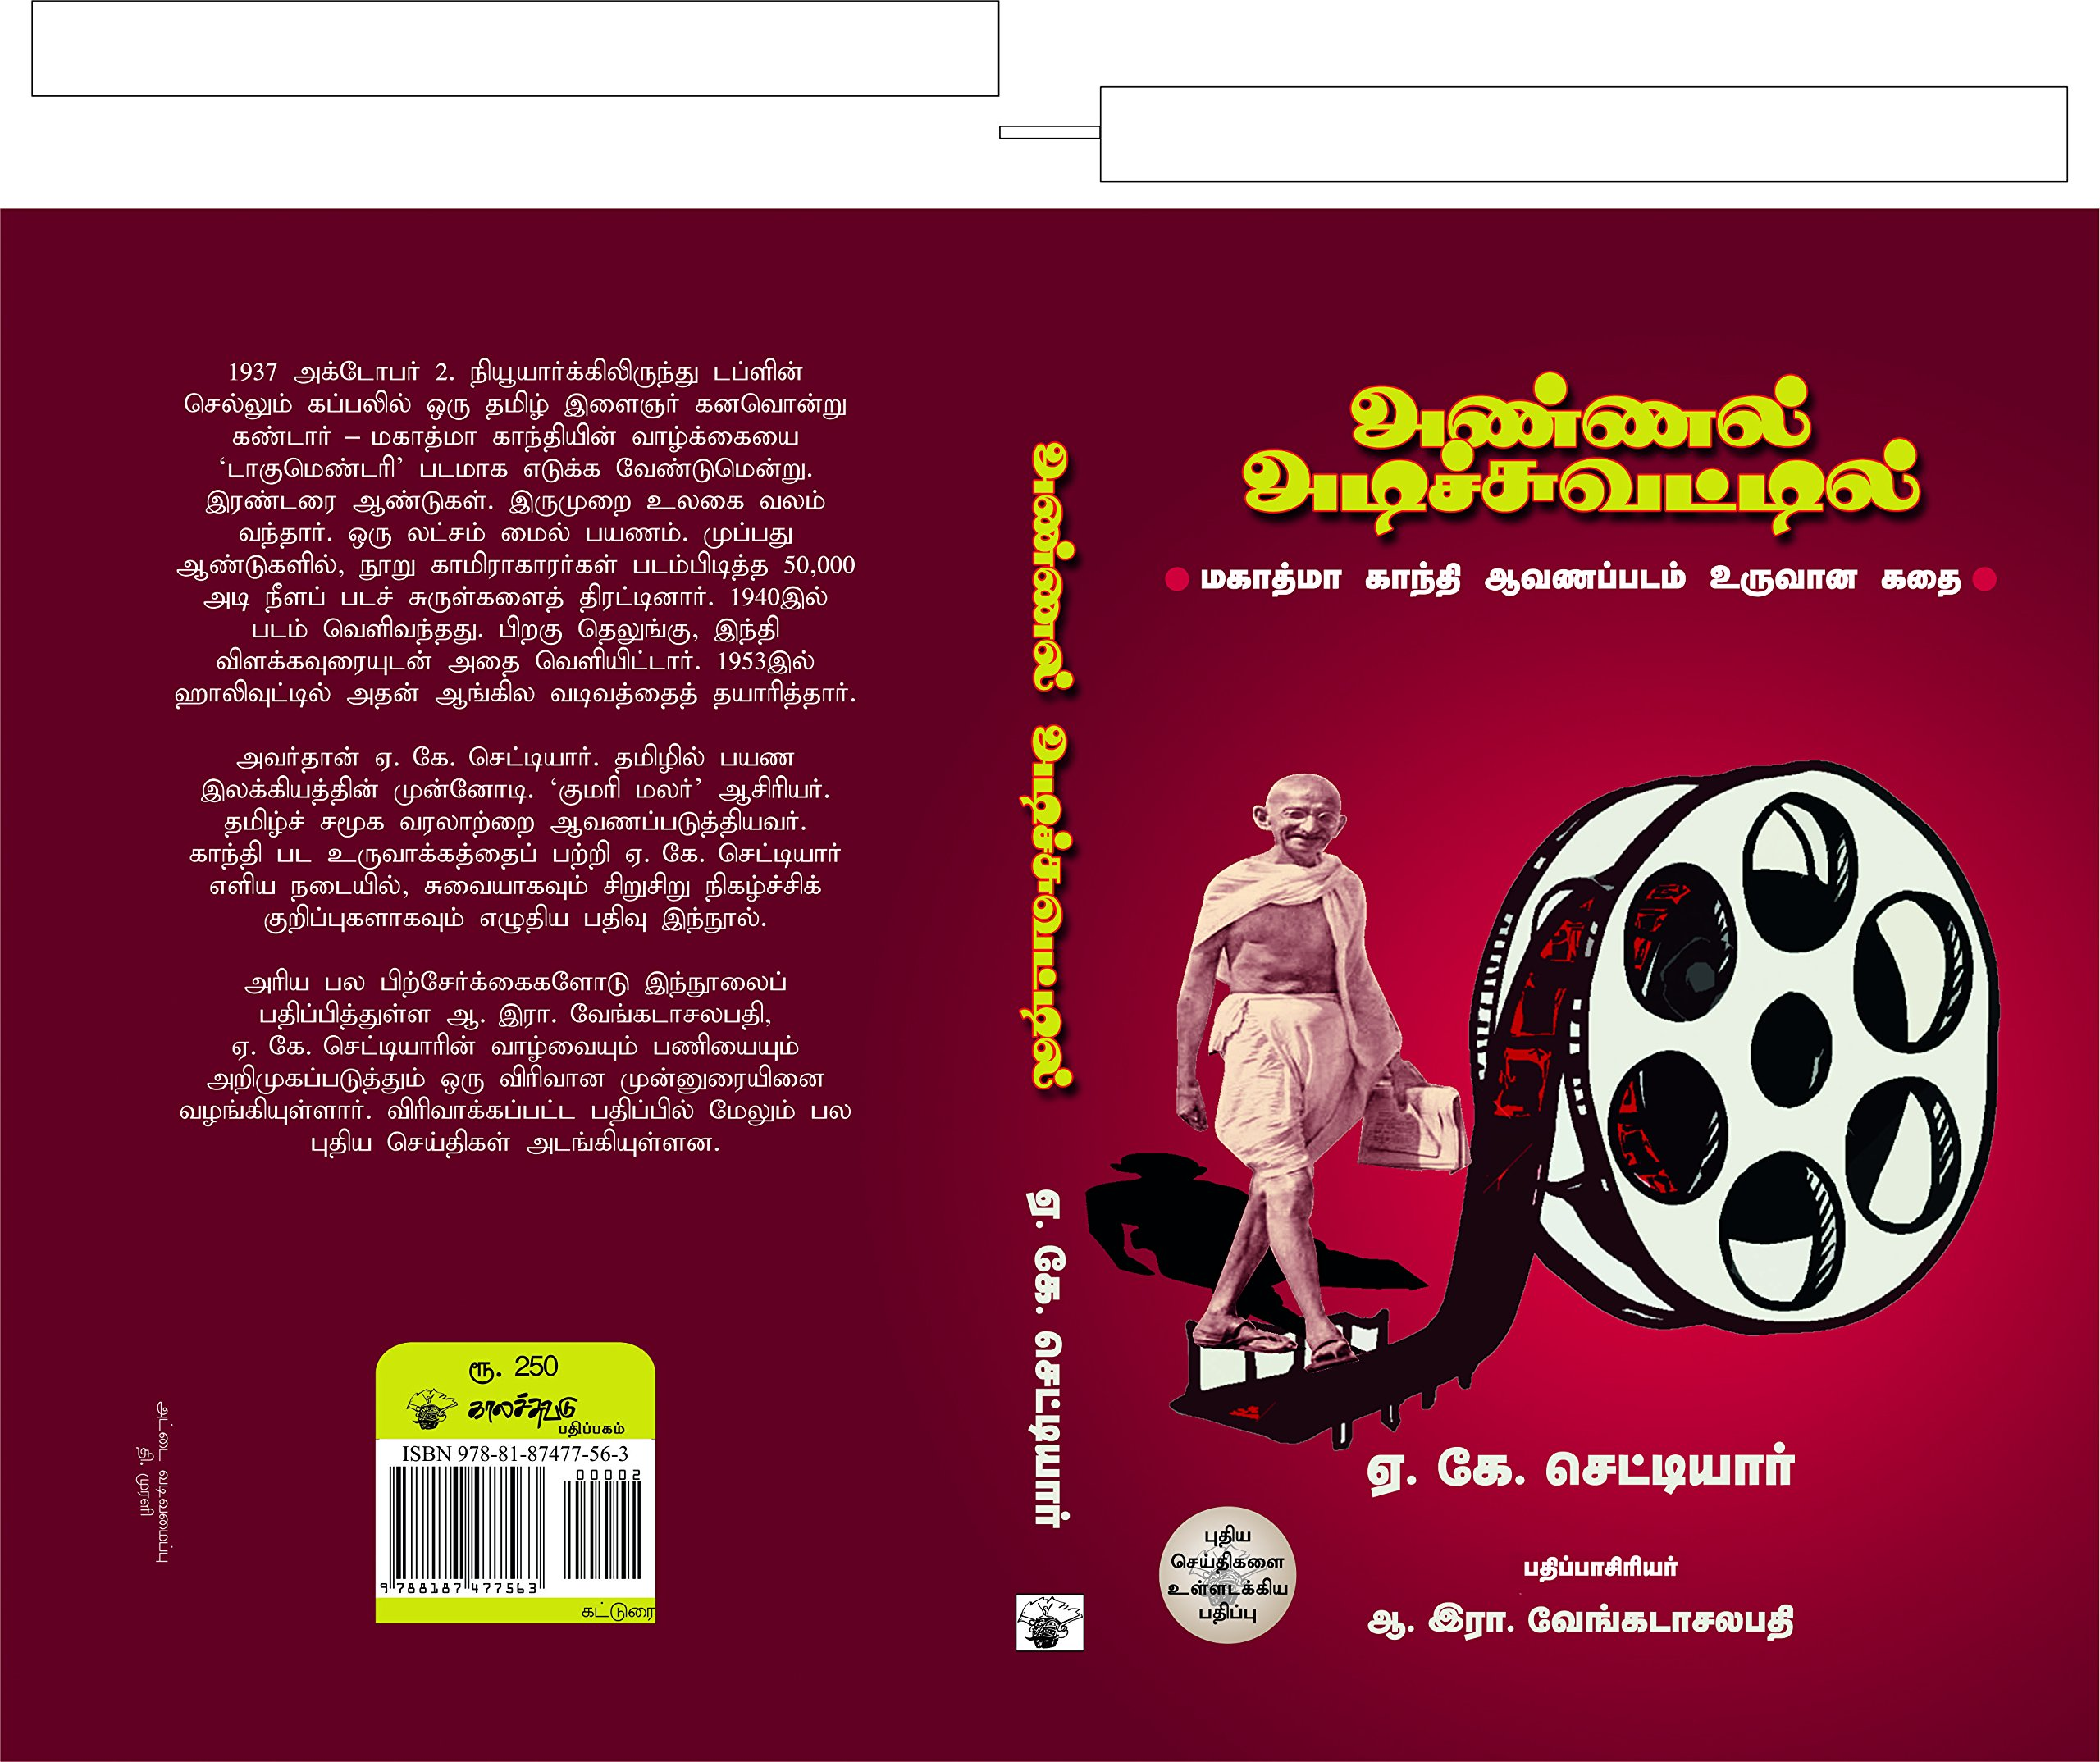 Amazon.in: Buy Annal Adichuvattil அண்ணல் அடிச்சுவட்டில் Book Online at Low  Prices in India | Annal Adichuvattil அண்ணல் அடிச்சுவட்டில் Reviews & Ratings